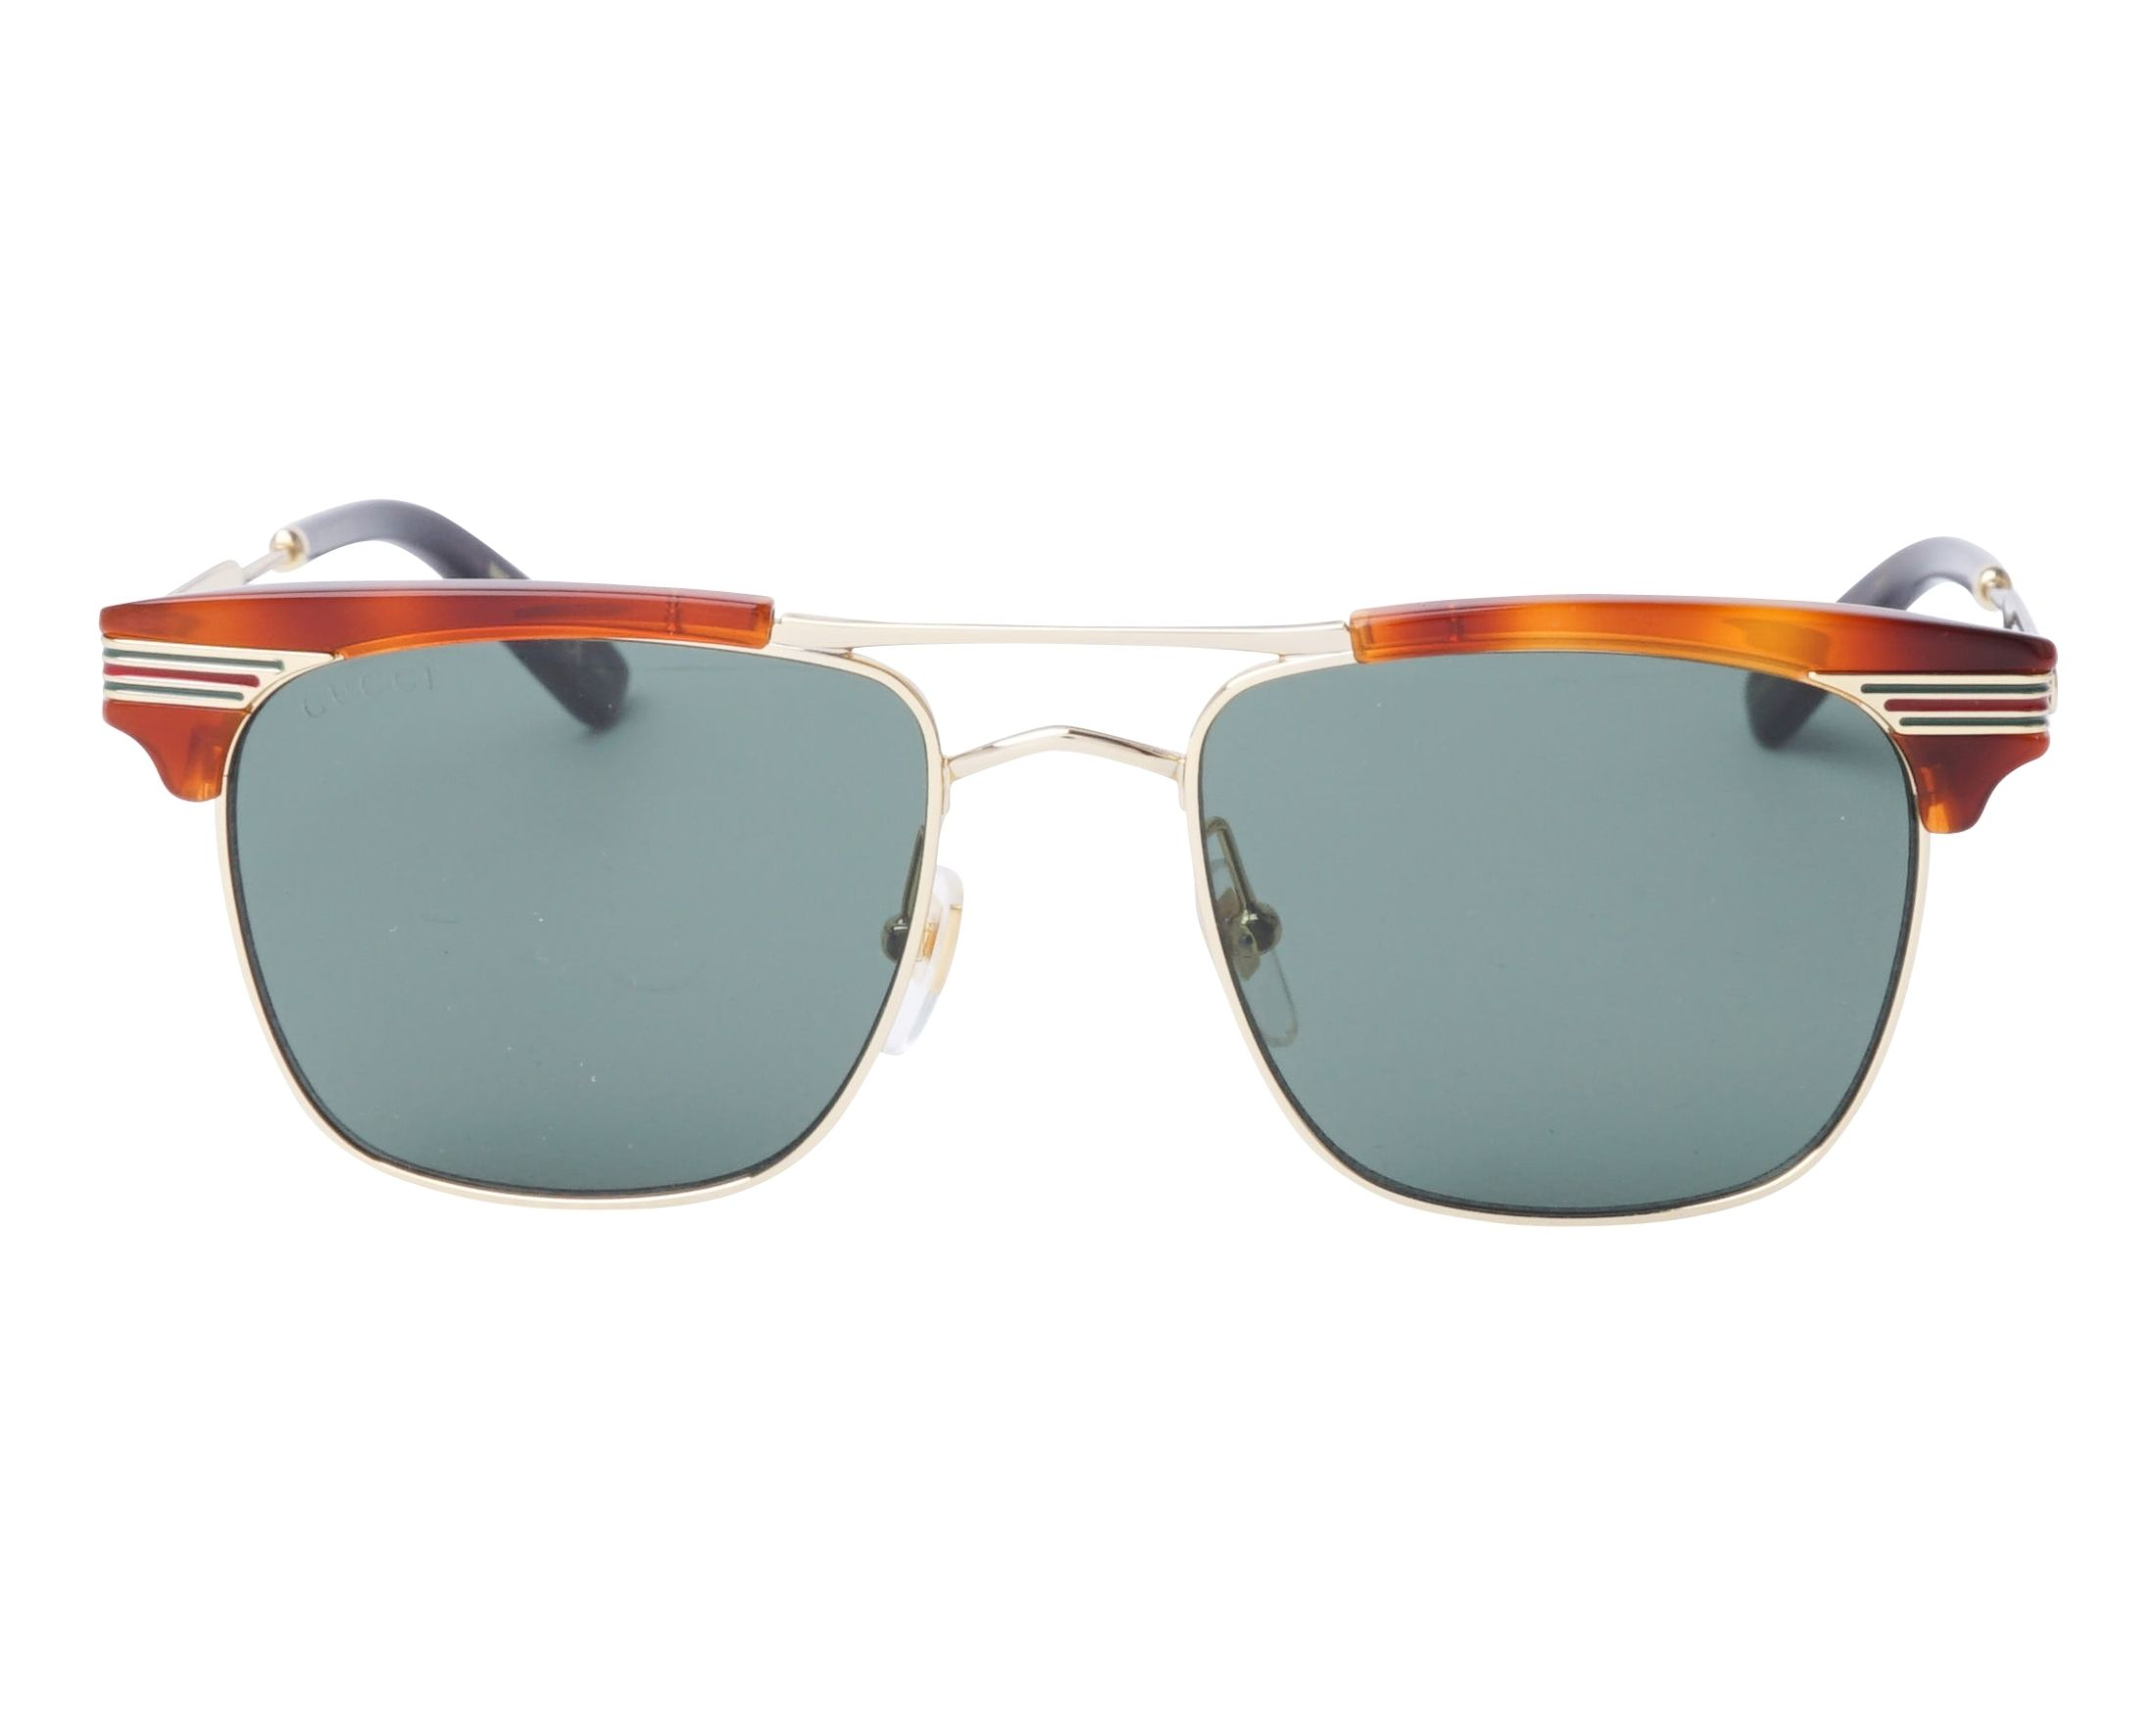 408a7543ffc Sunglasses Gucci GG-0287-S 004 52-18 Havana Gold front view